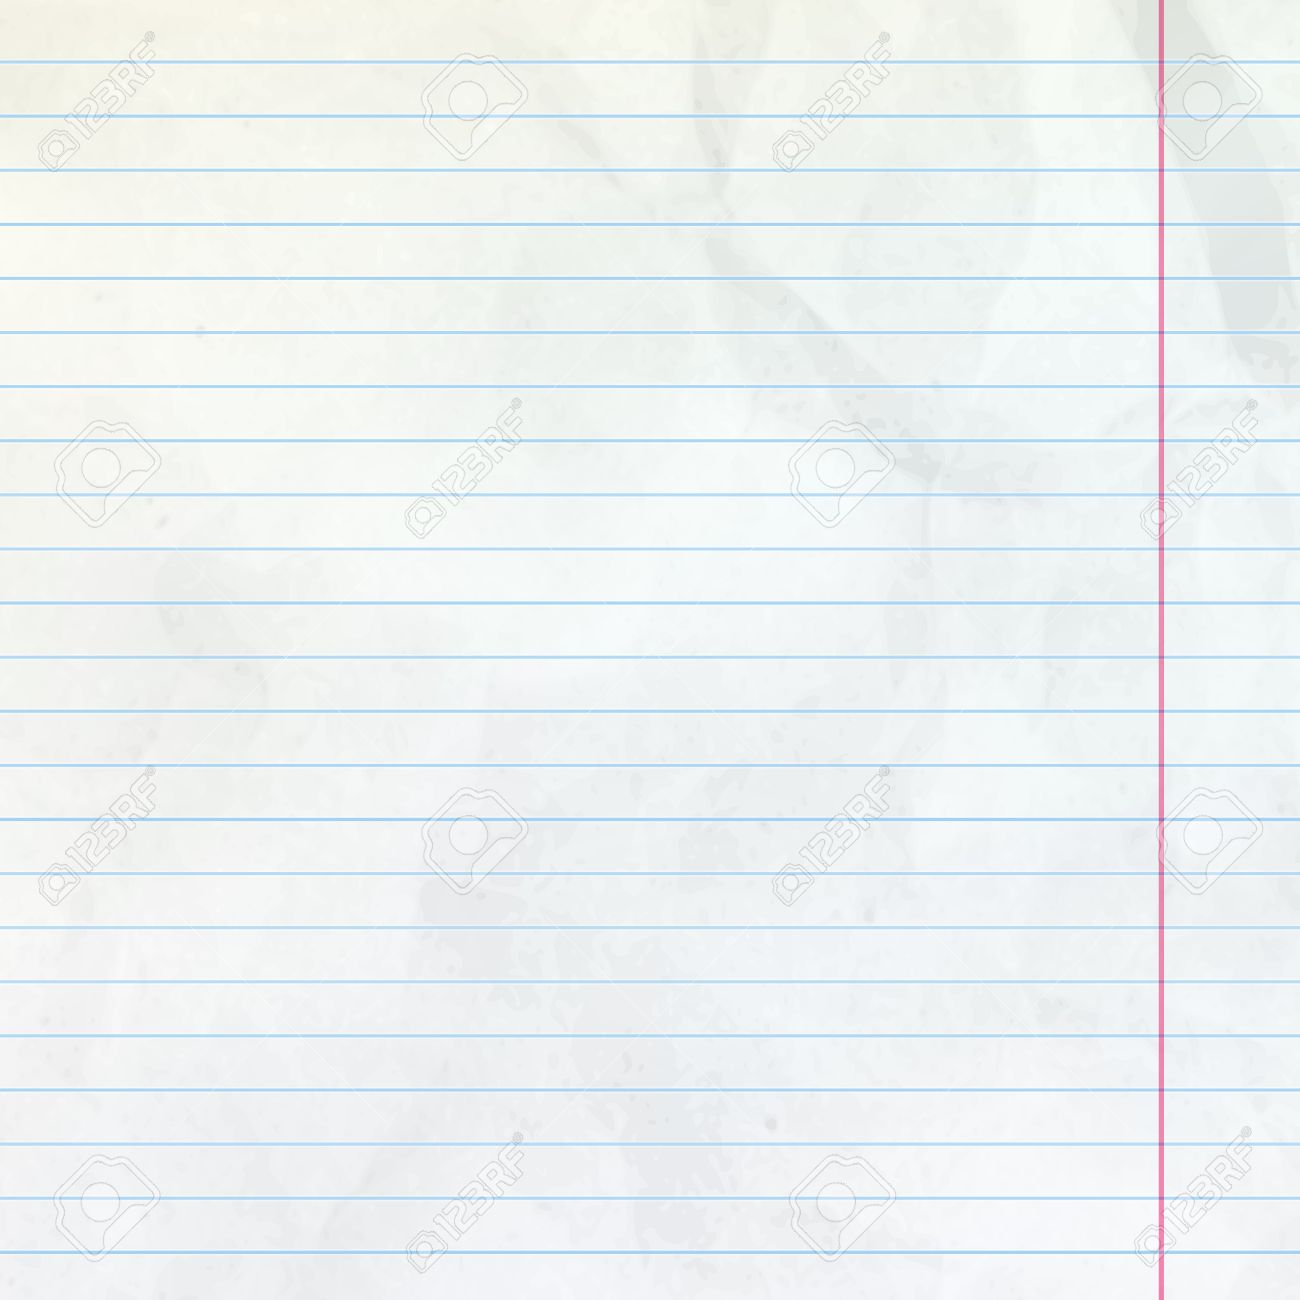 realistic white lined sheet of notepad crumpled paper background